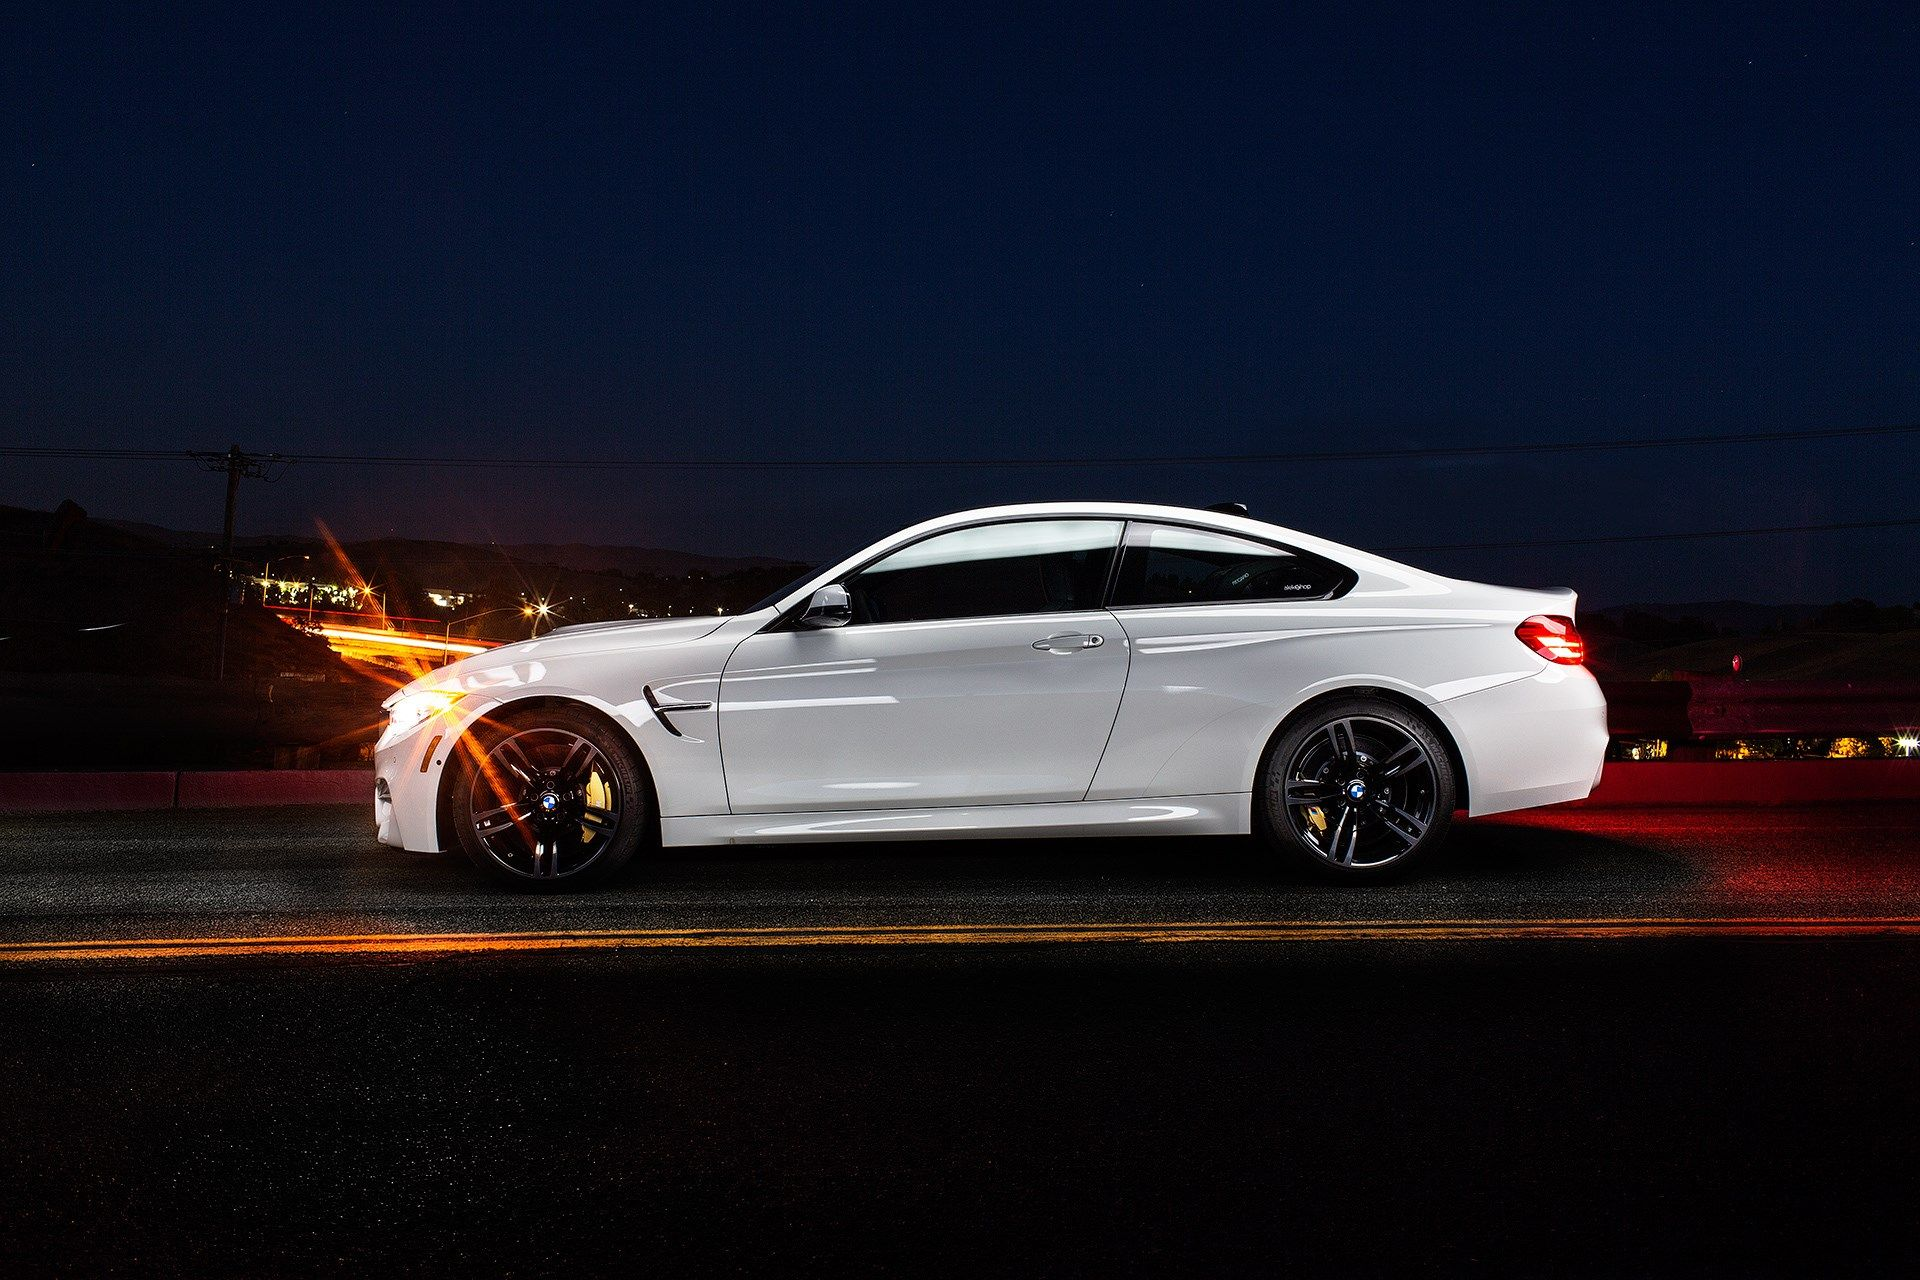 Qiana Edwards Bmw M3 Image Wallpapers Collection 1920x1280 Px Bmw M4 Coupe Bmw M4 Bmw